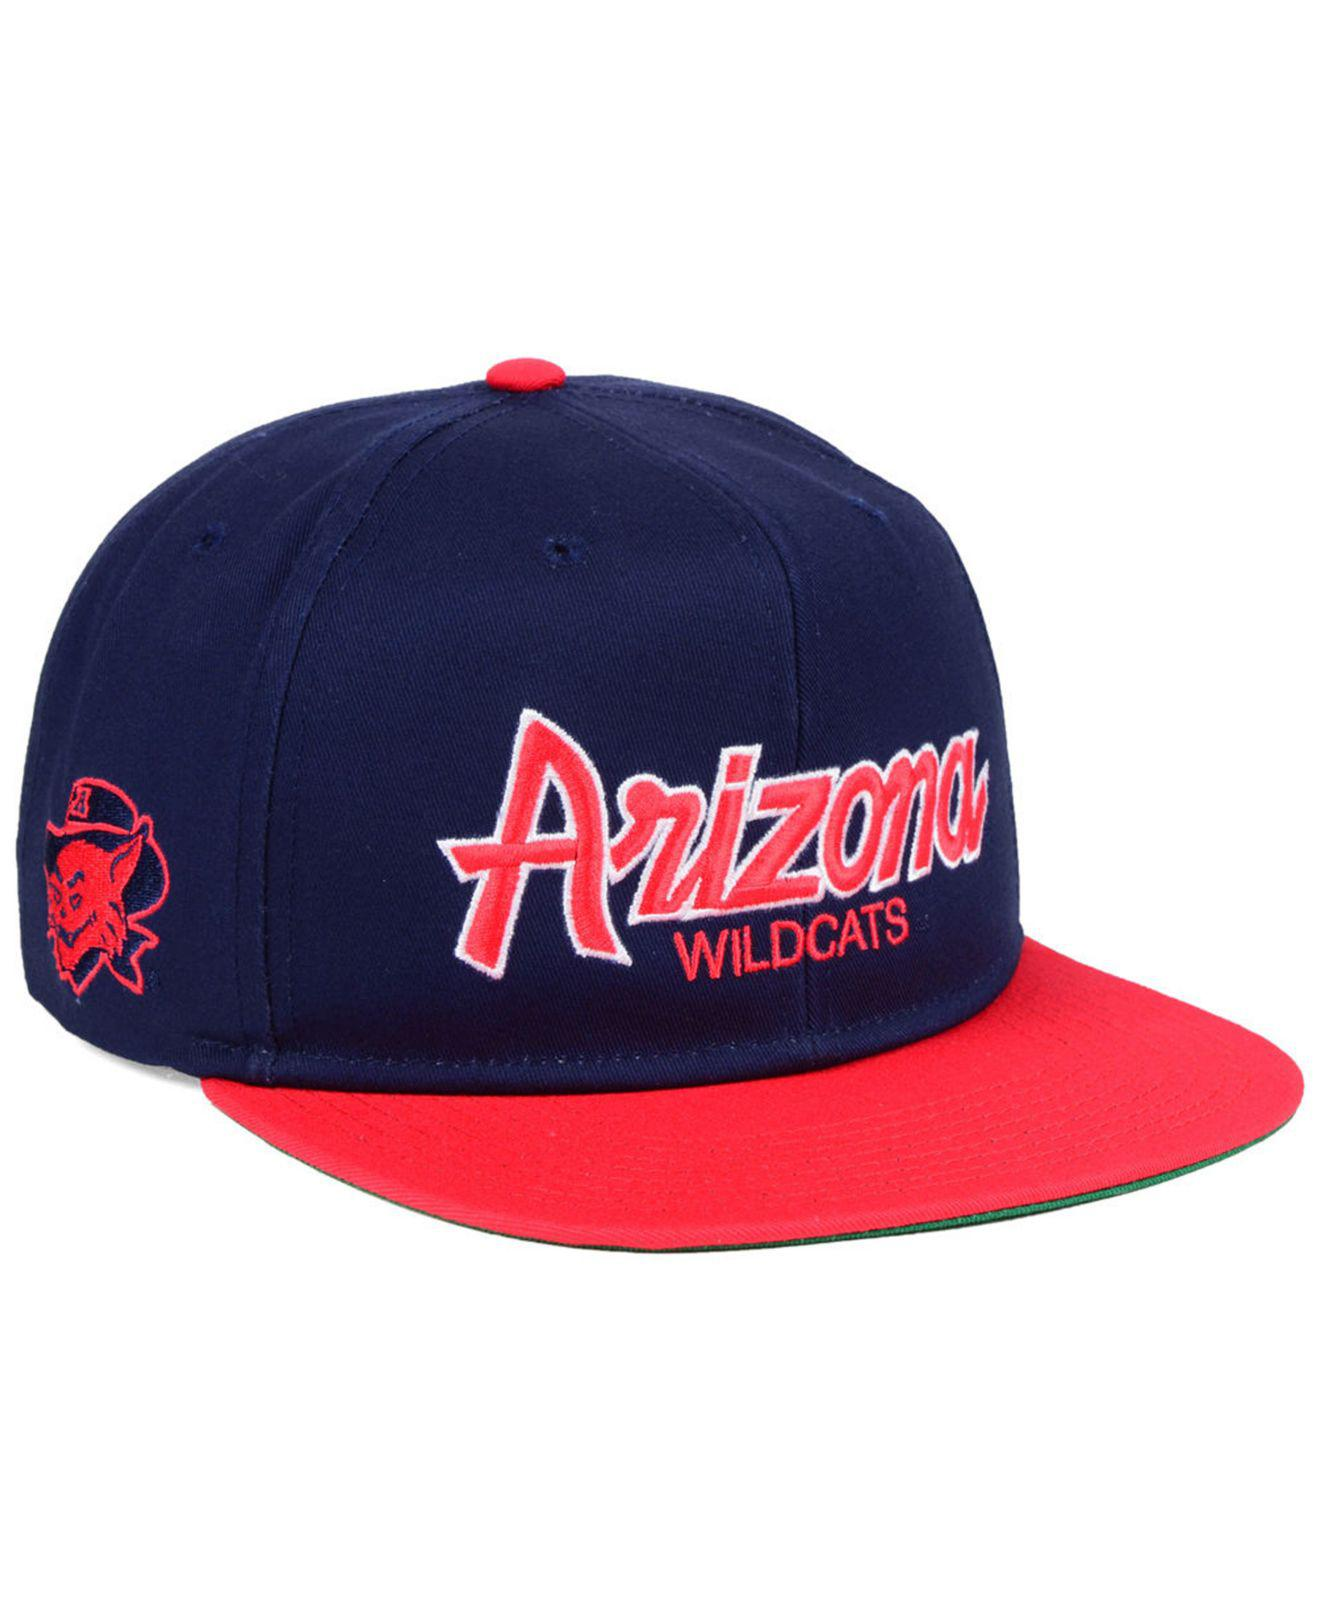 buy popular e3b46 5a4fa Nike Arizona Wildcats Sport Specialties Snapback Cap in Blue for Men ...